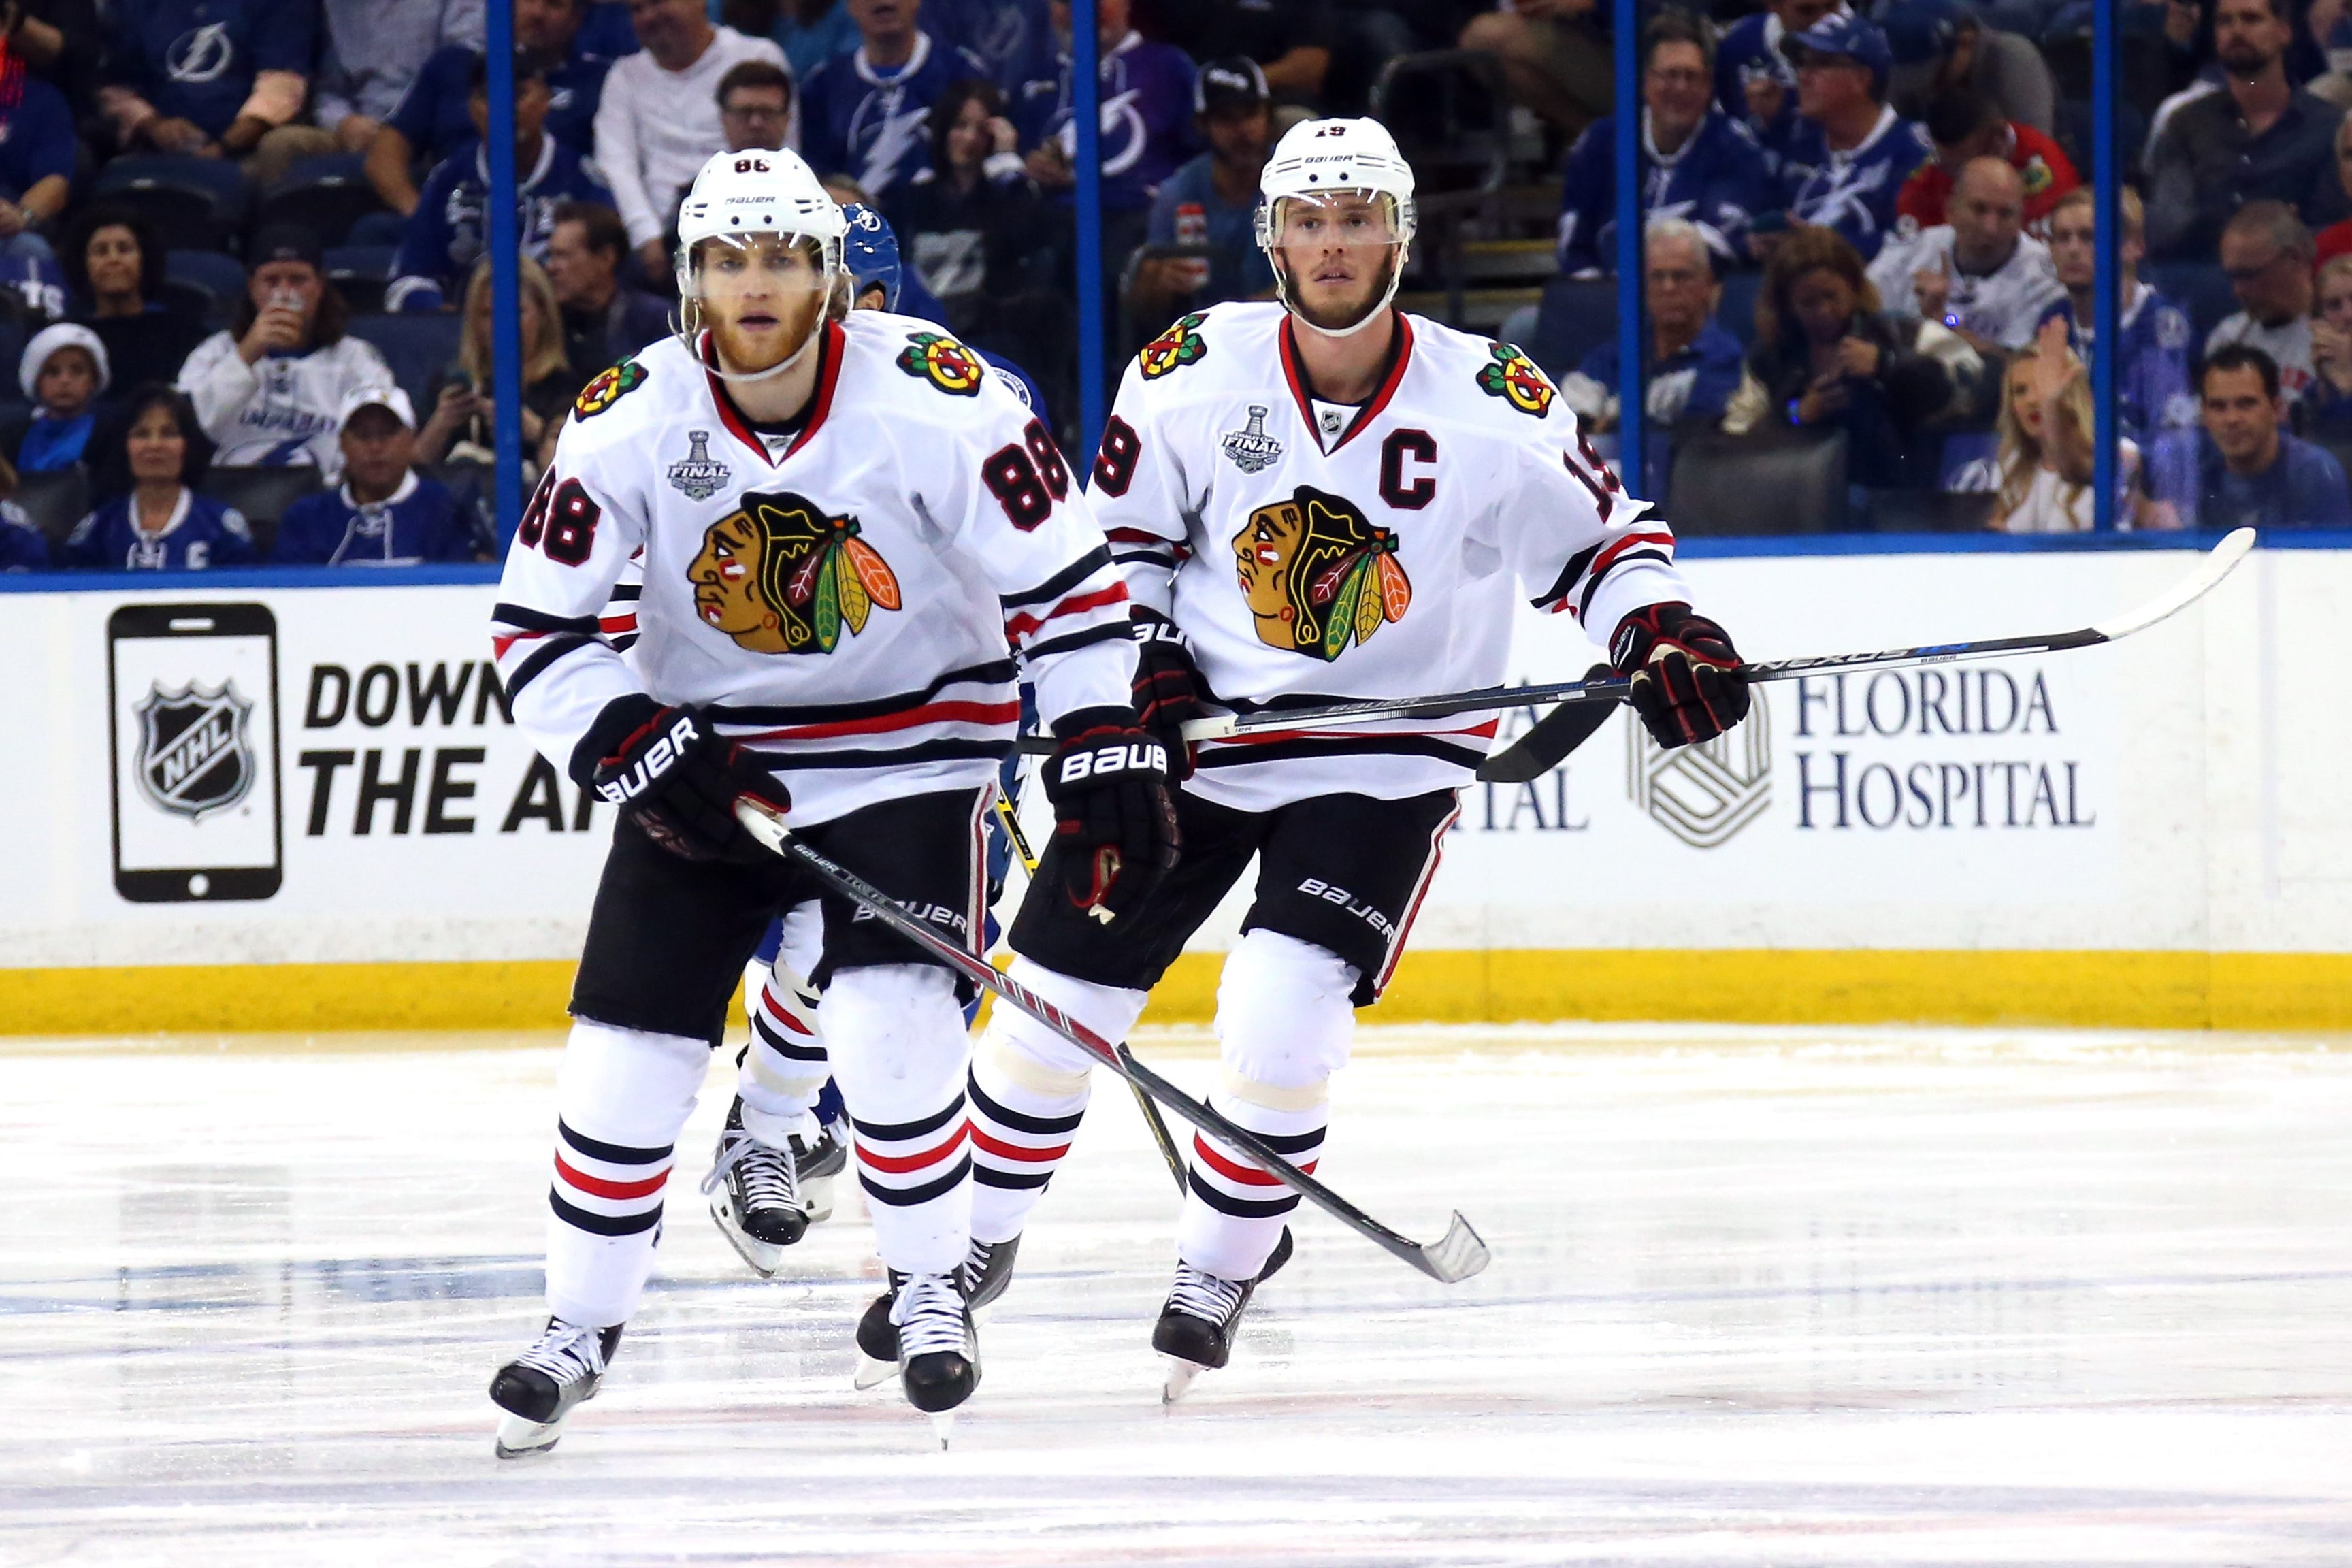 Patrick Kane, left, and captain Jonathan Toews will be on different lines when the Blackhawks face the Lightning in Game Three on Monday night.